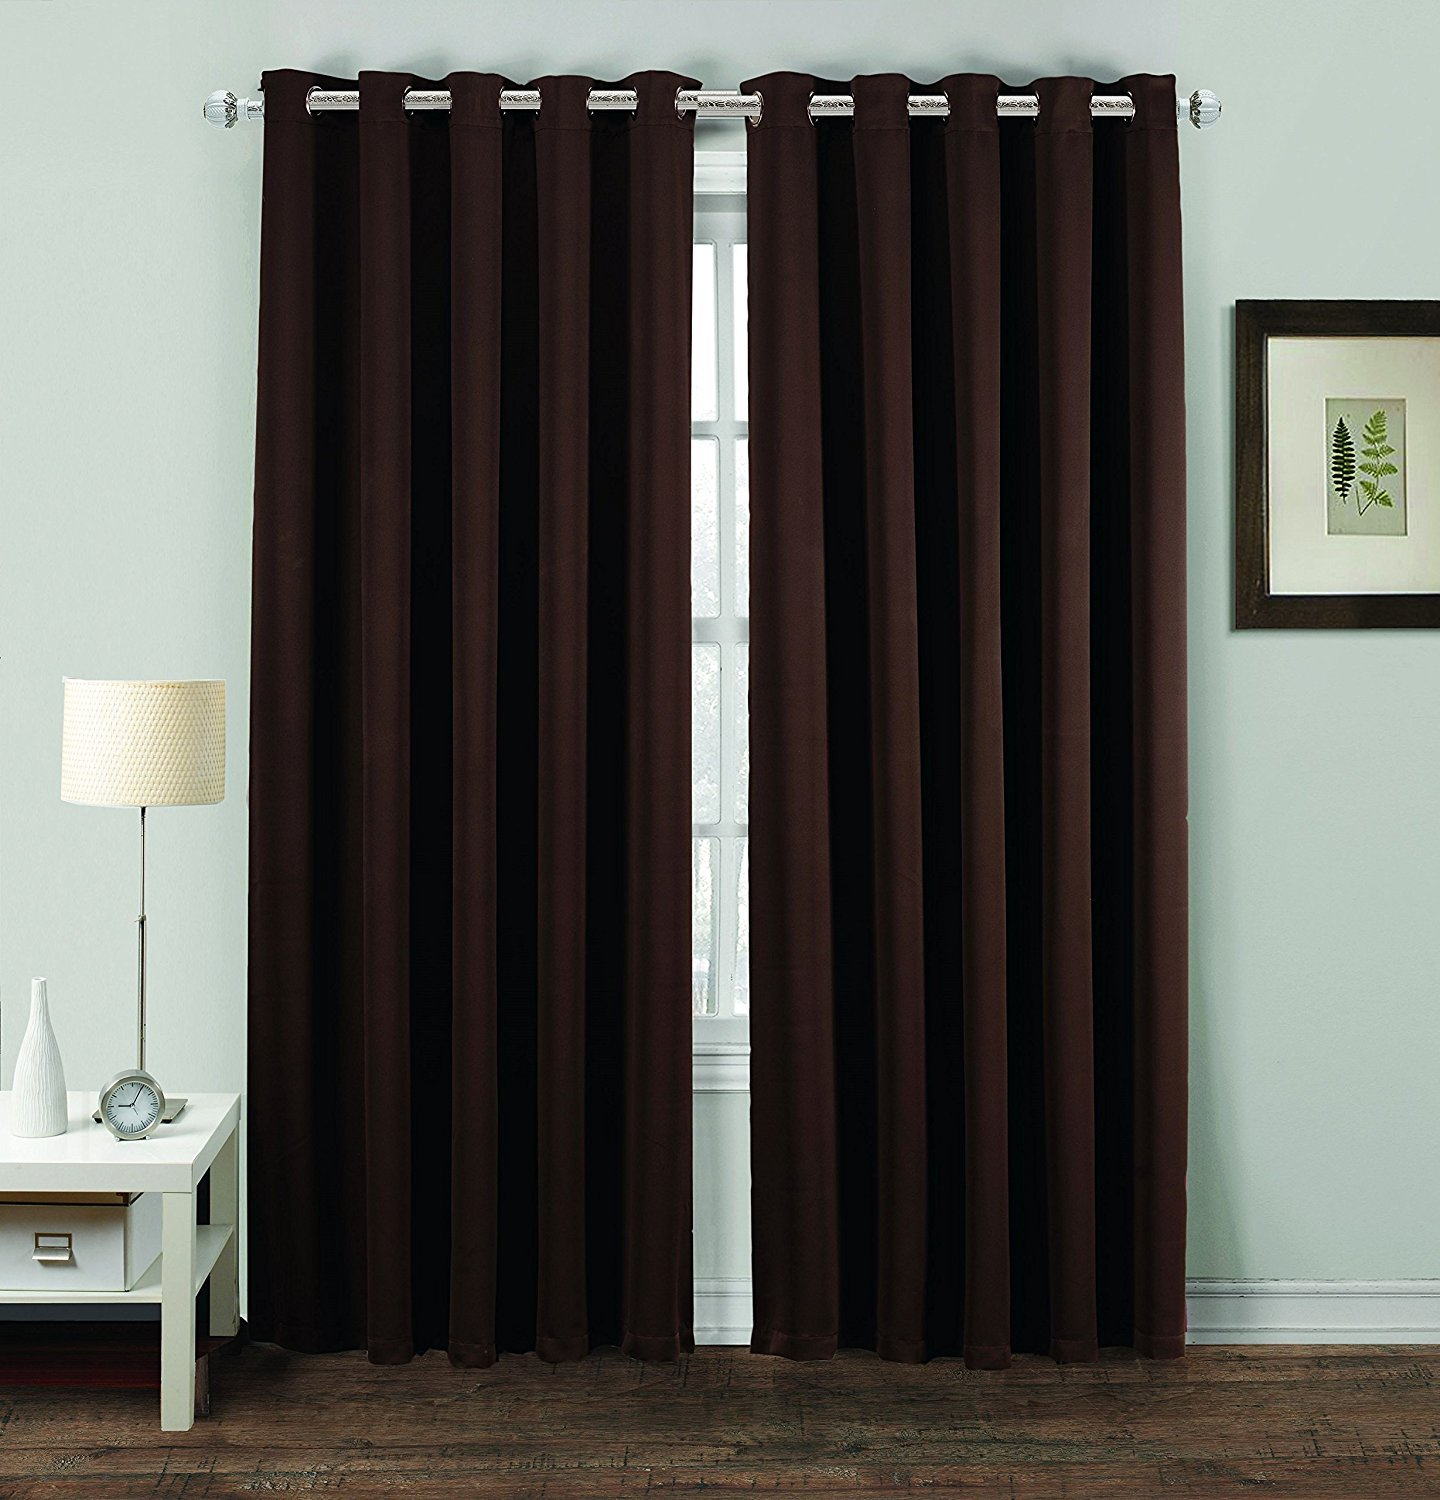 "Best And Newest Thermal Insulated Blackout Curtain Pairs Within Noah's Linen Thermal Insulated Blackout Curtain Pair Eyelet Ring Top Including Tie Backs 46"" (width) X 72"" (drop) Chocolate (View 6 of 20)"